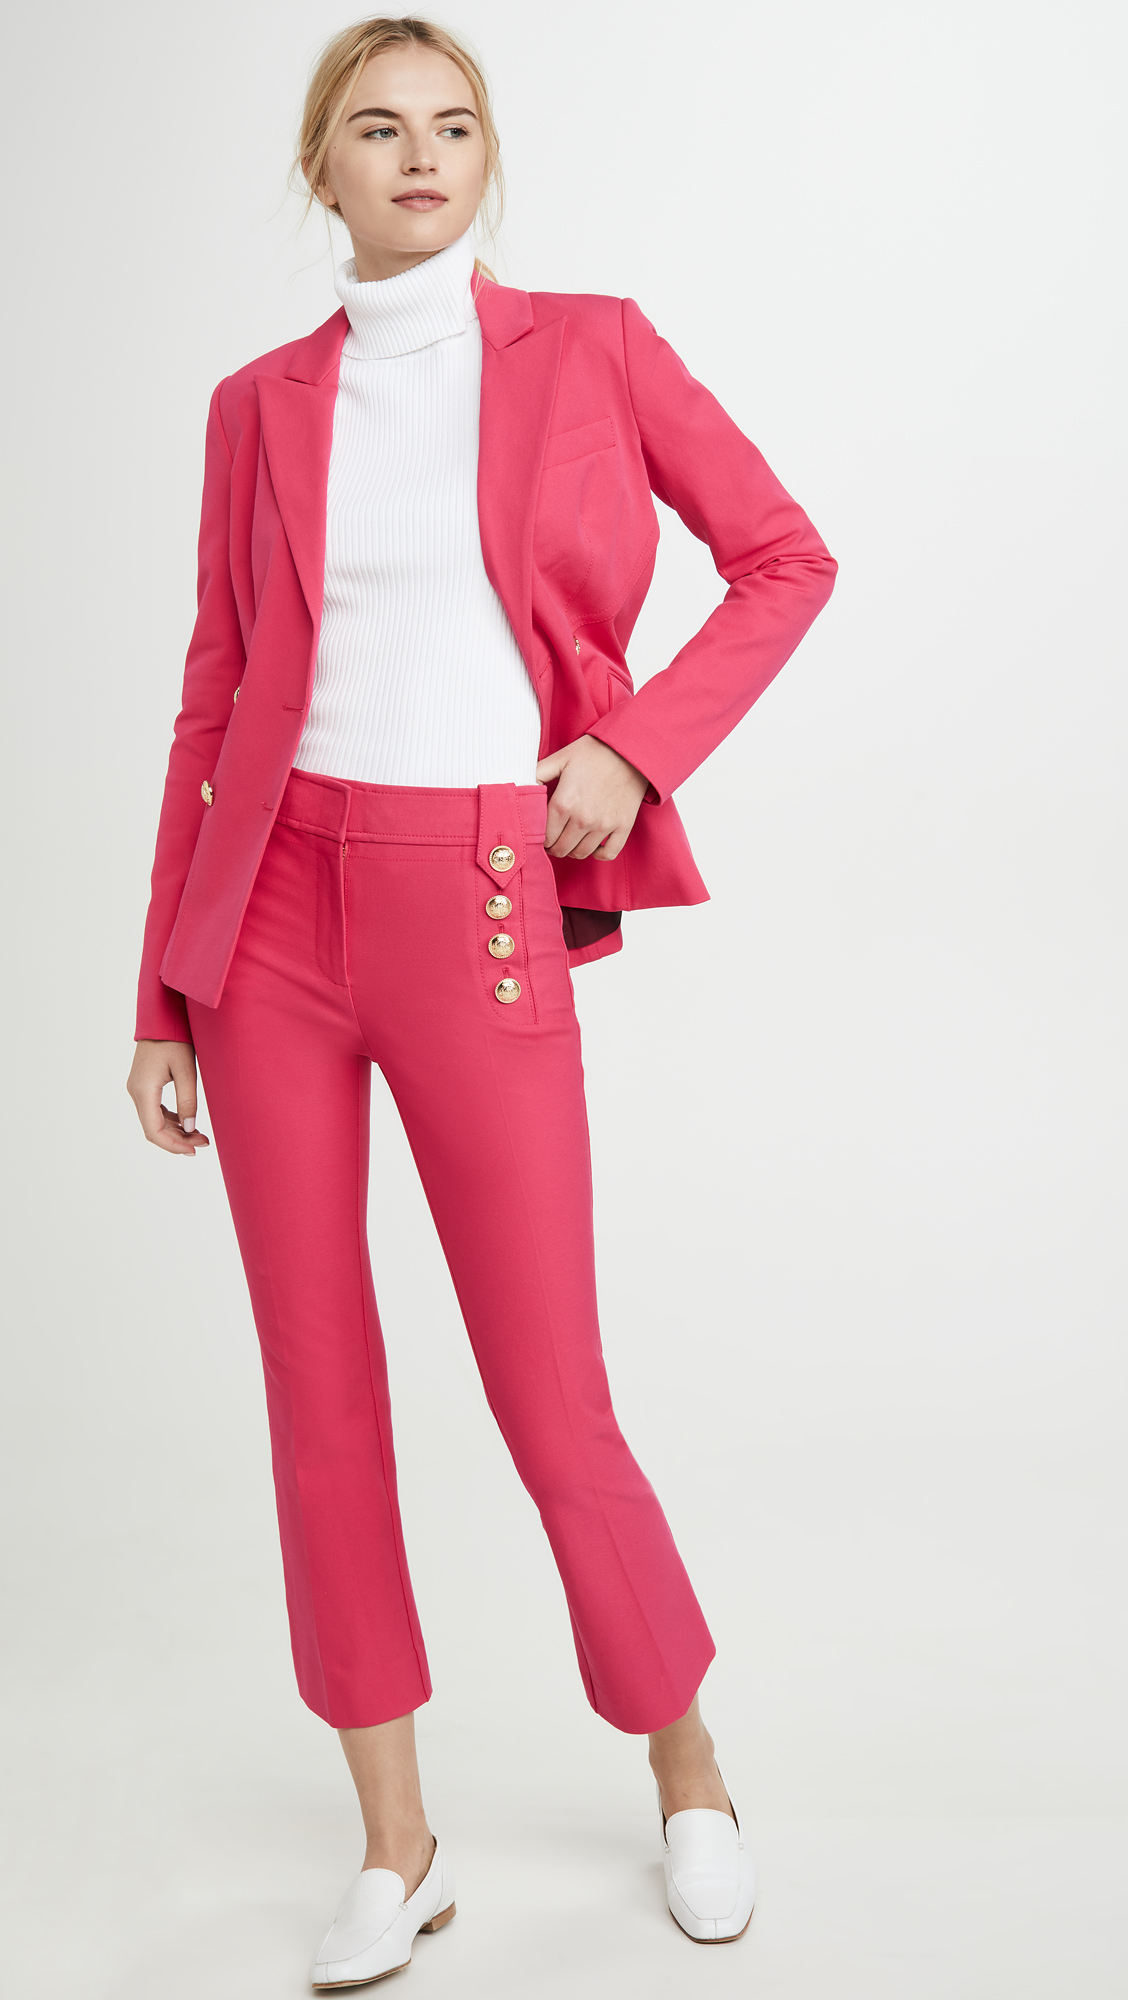 Derek Lam 10 Crosby Robertson Cropped Flare Trousers with Sailor Buttons